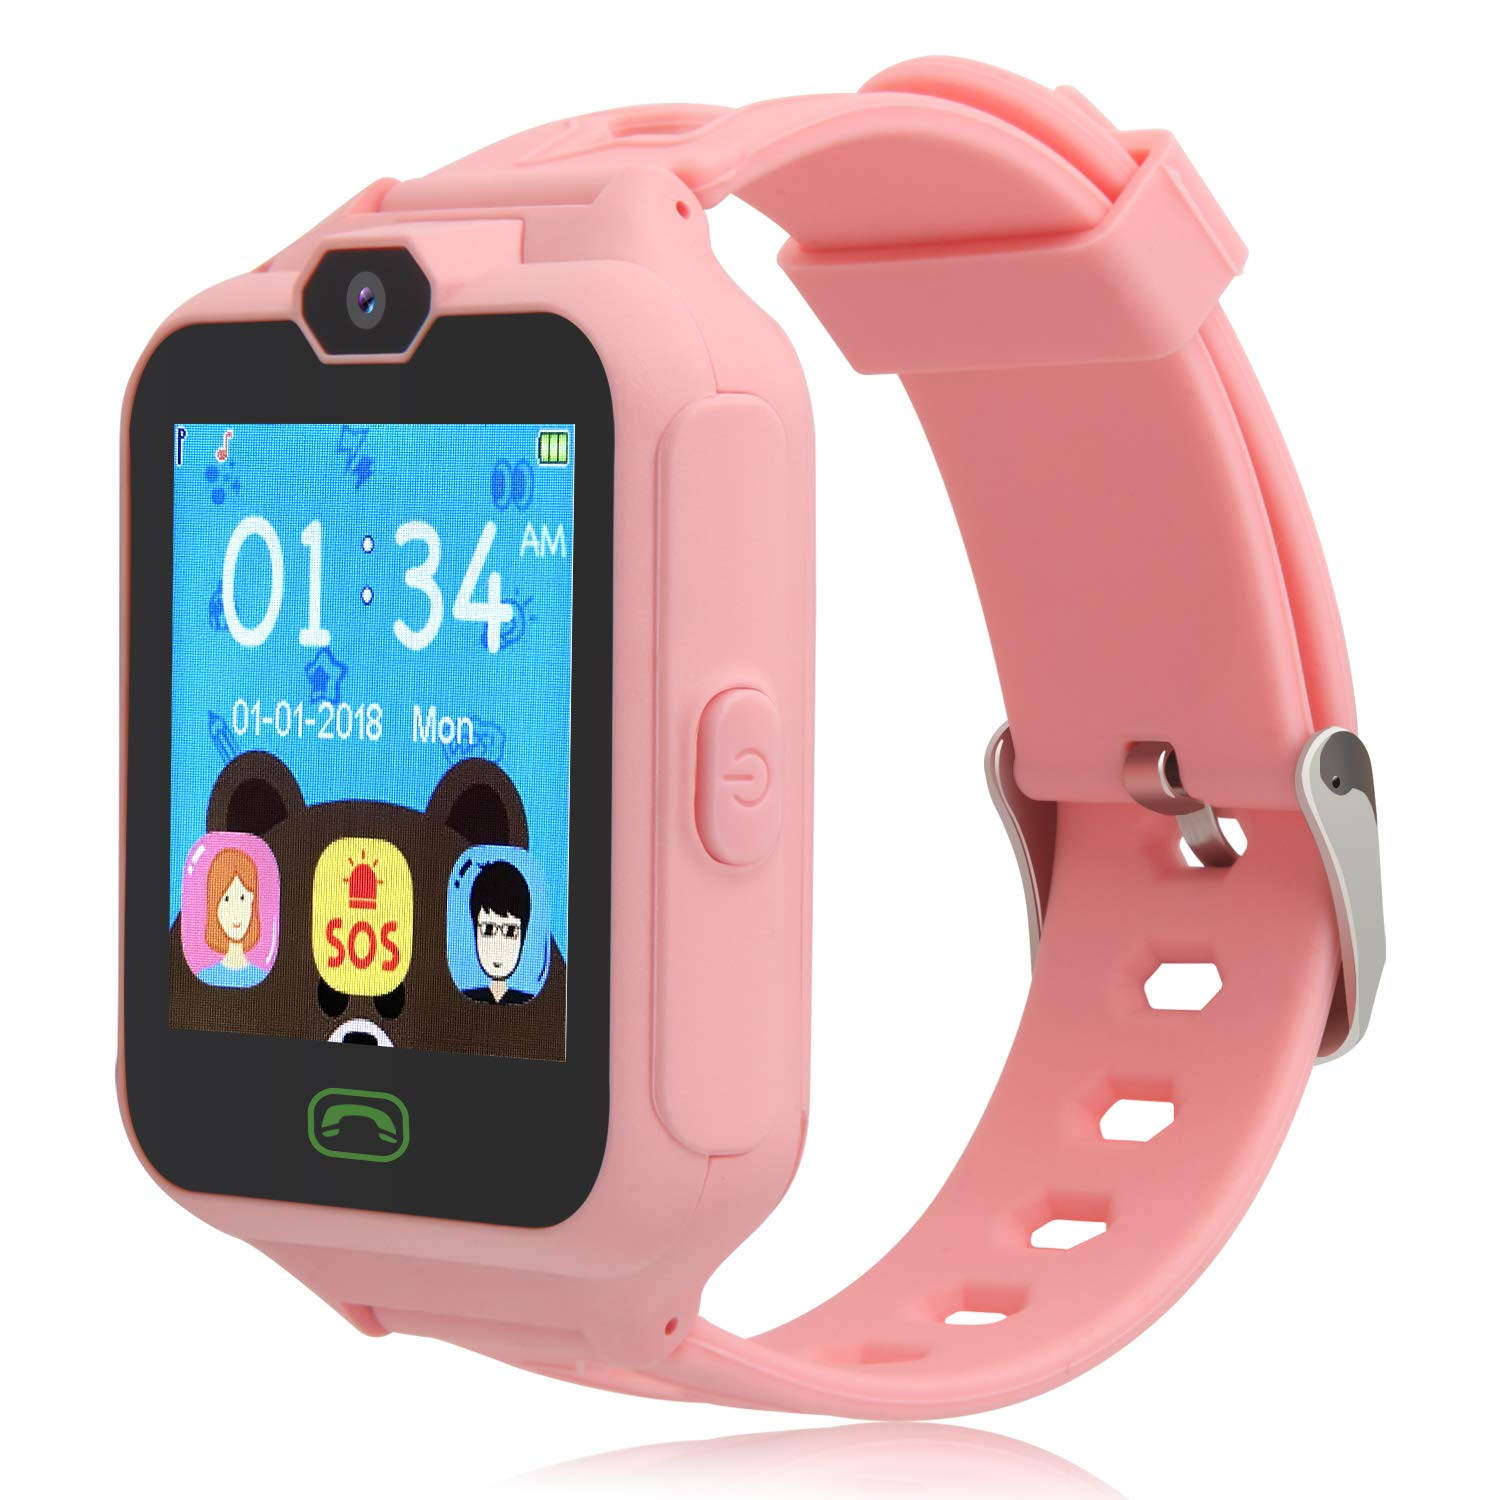 HSX_Z Phone Watch for Kids Smart Watch for Kids with Digital Camera Touch Screen, Phone Game Cool Toys Watch Gifts for Girls Boys Children Birthday Gifts Watch£­Pink by HSX_Z (Image #1)